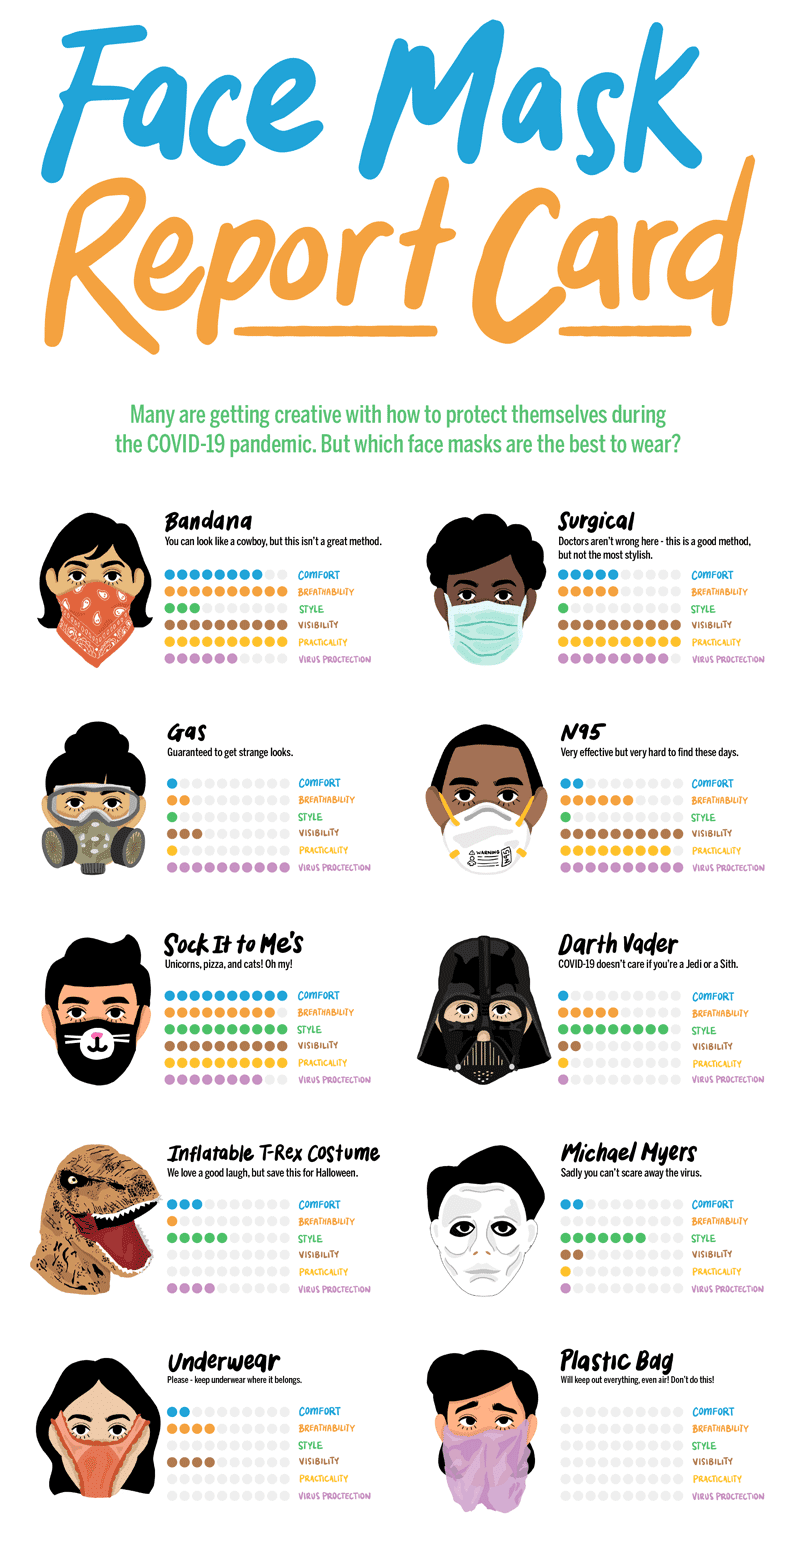 Face Mask Report Card #infographic #Health & Beauty #Face mask #Report Card